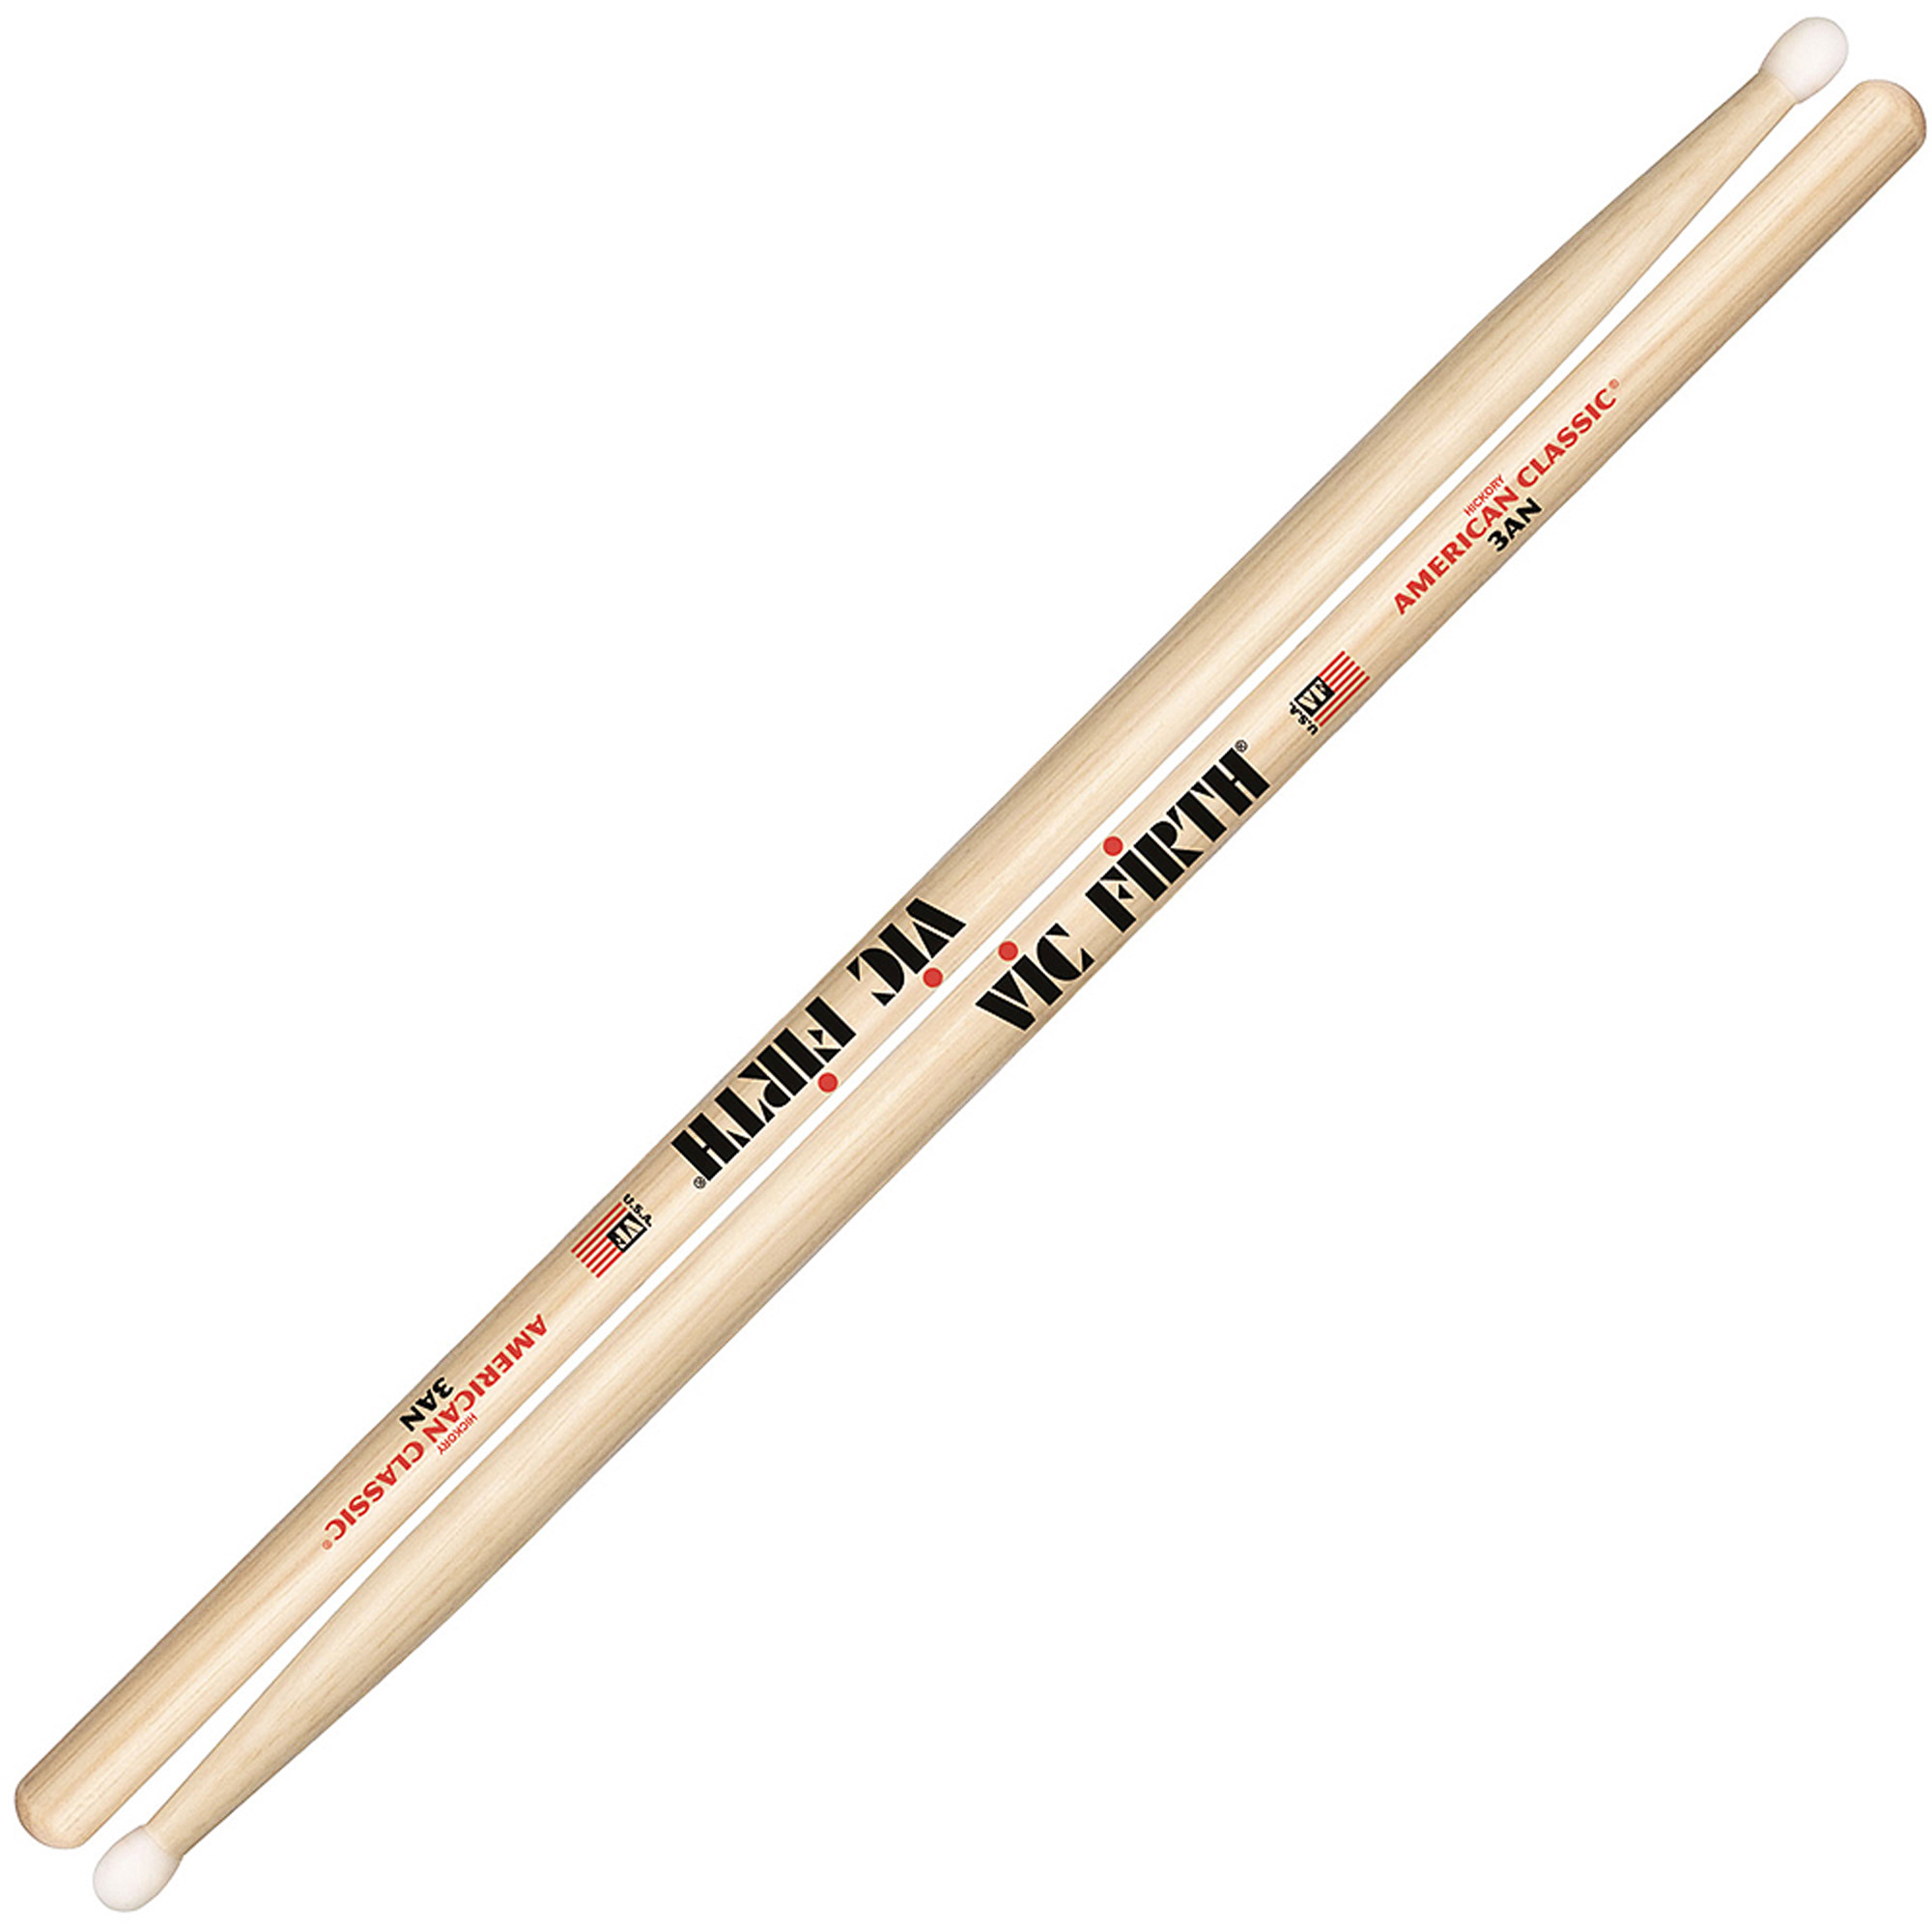 Vic Firth American Classic 3A Nylon Tip Hickory Drumsticks by Vic Firth